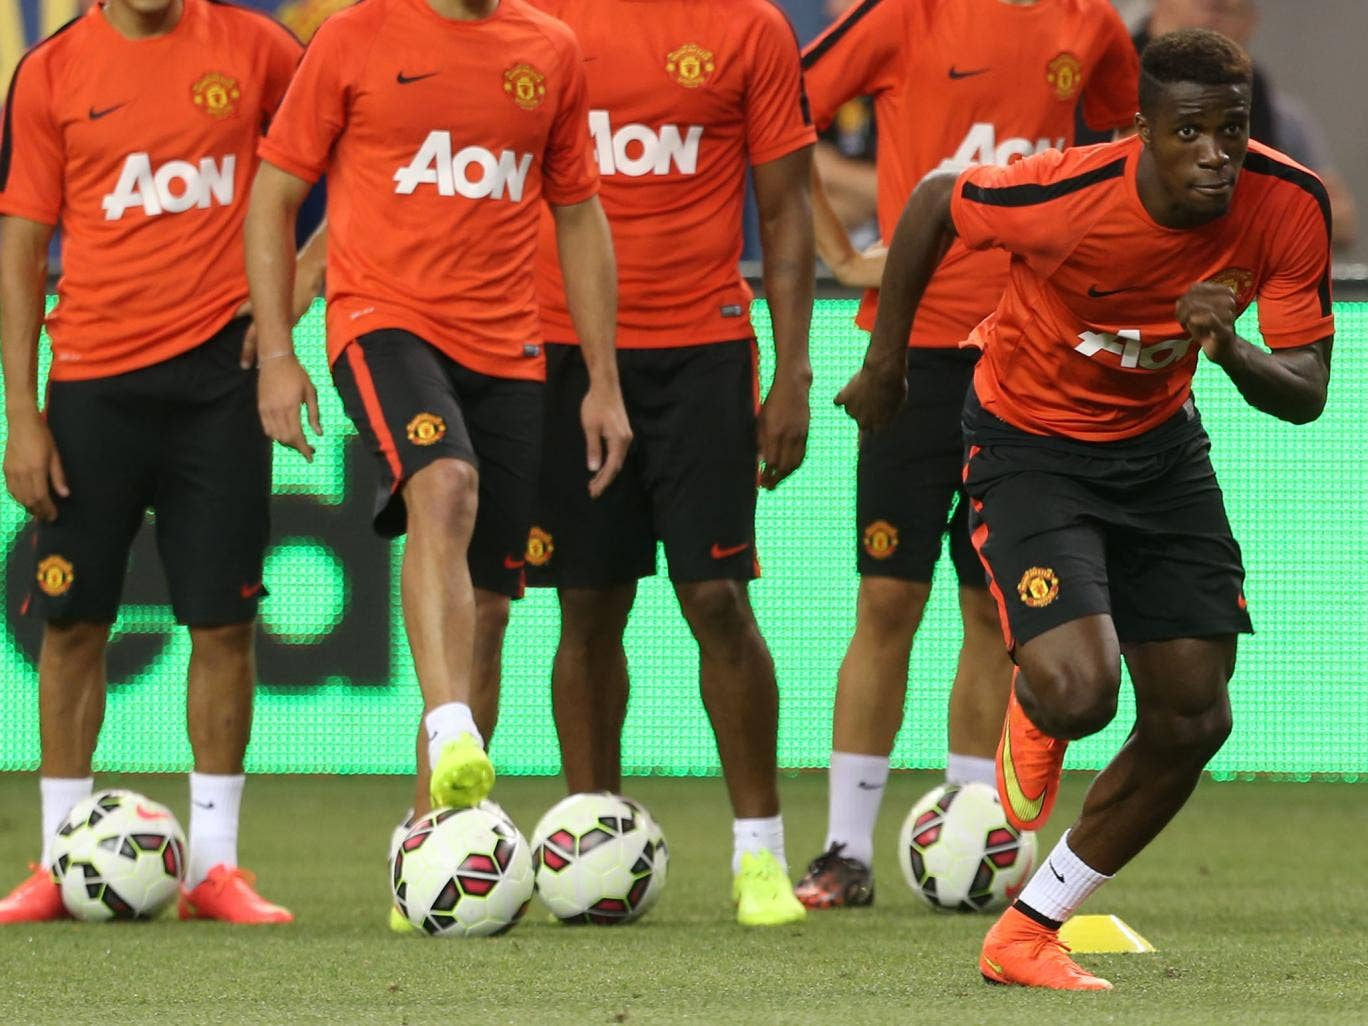 Wilfred Zaha pictured during Manchester United's pre-season tour